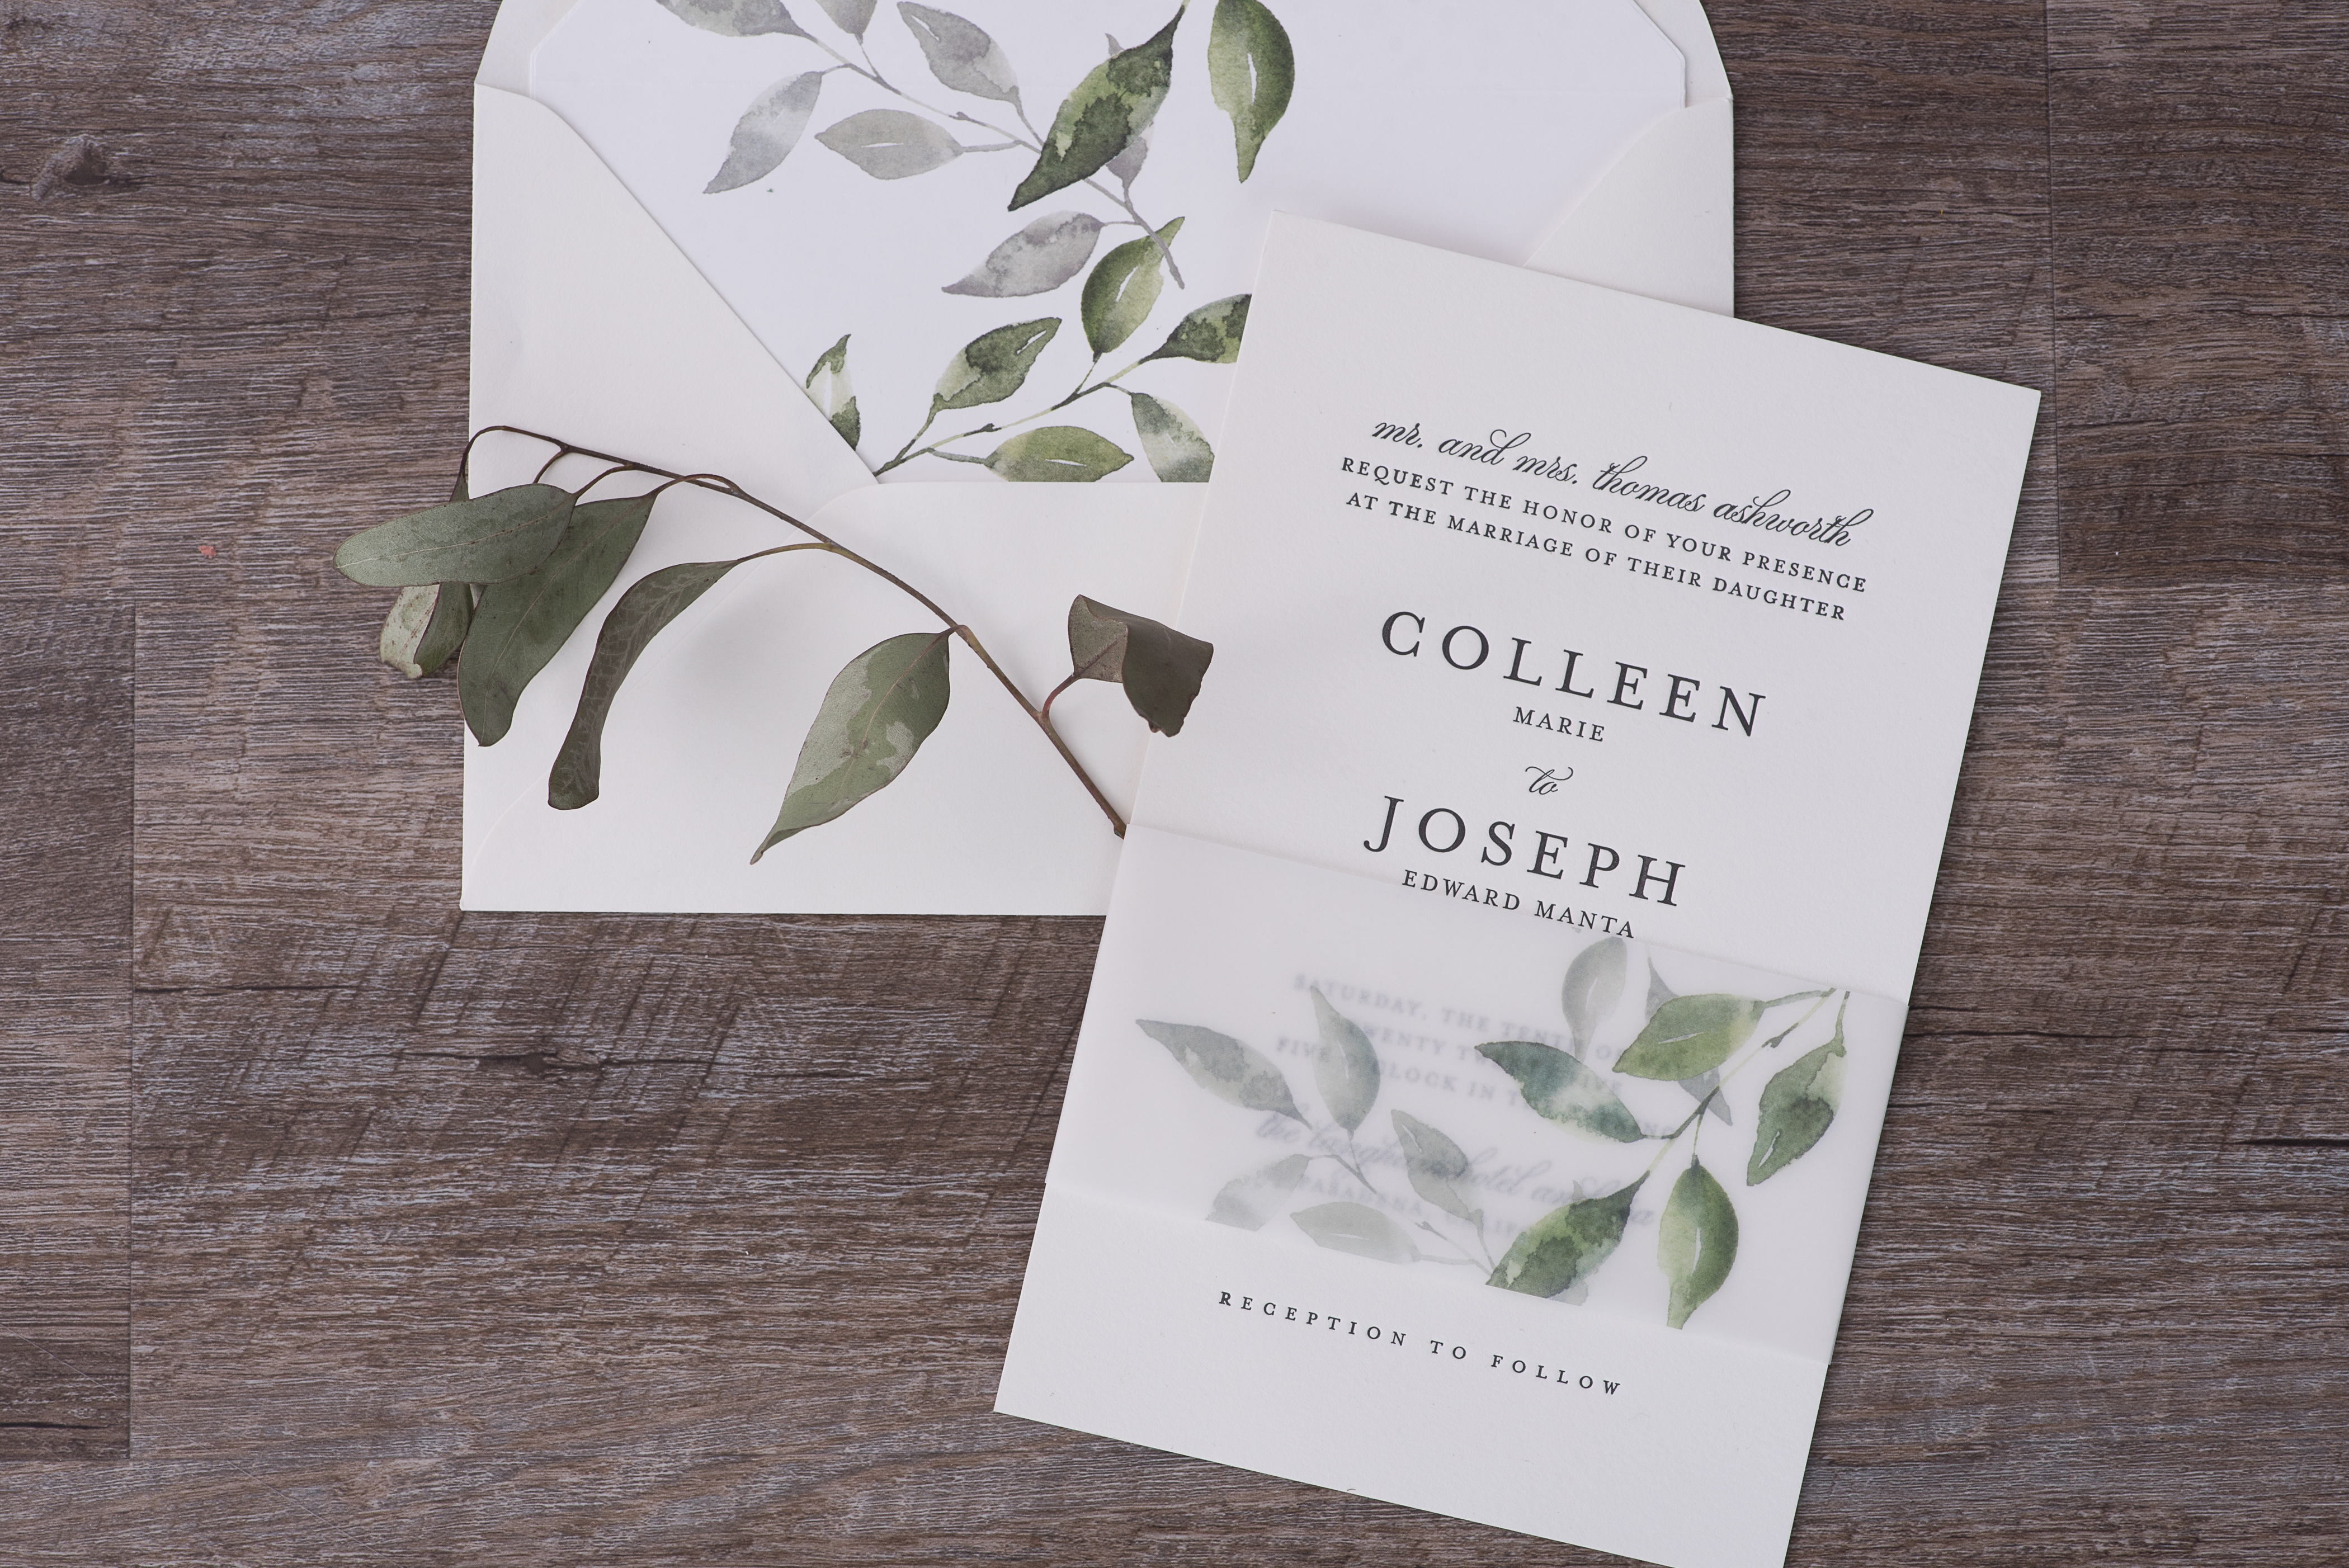 Greenery leaves on a vellum wrap and beautiful envelope liner embellish this stunning letterpress wedding invitation.